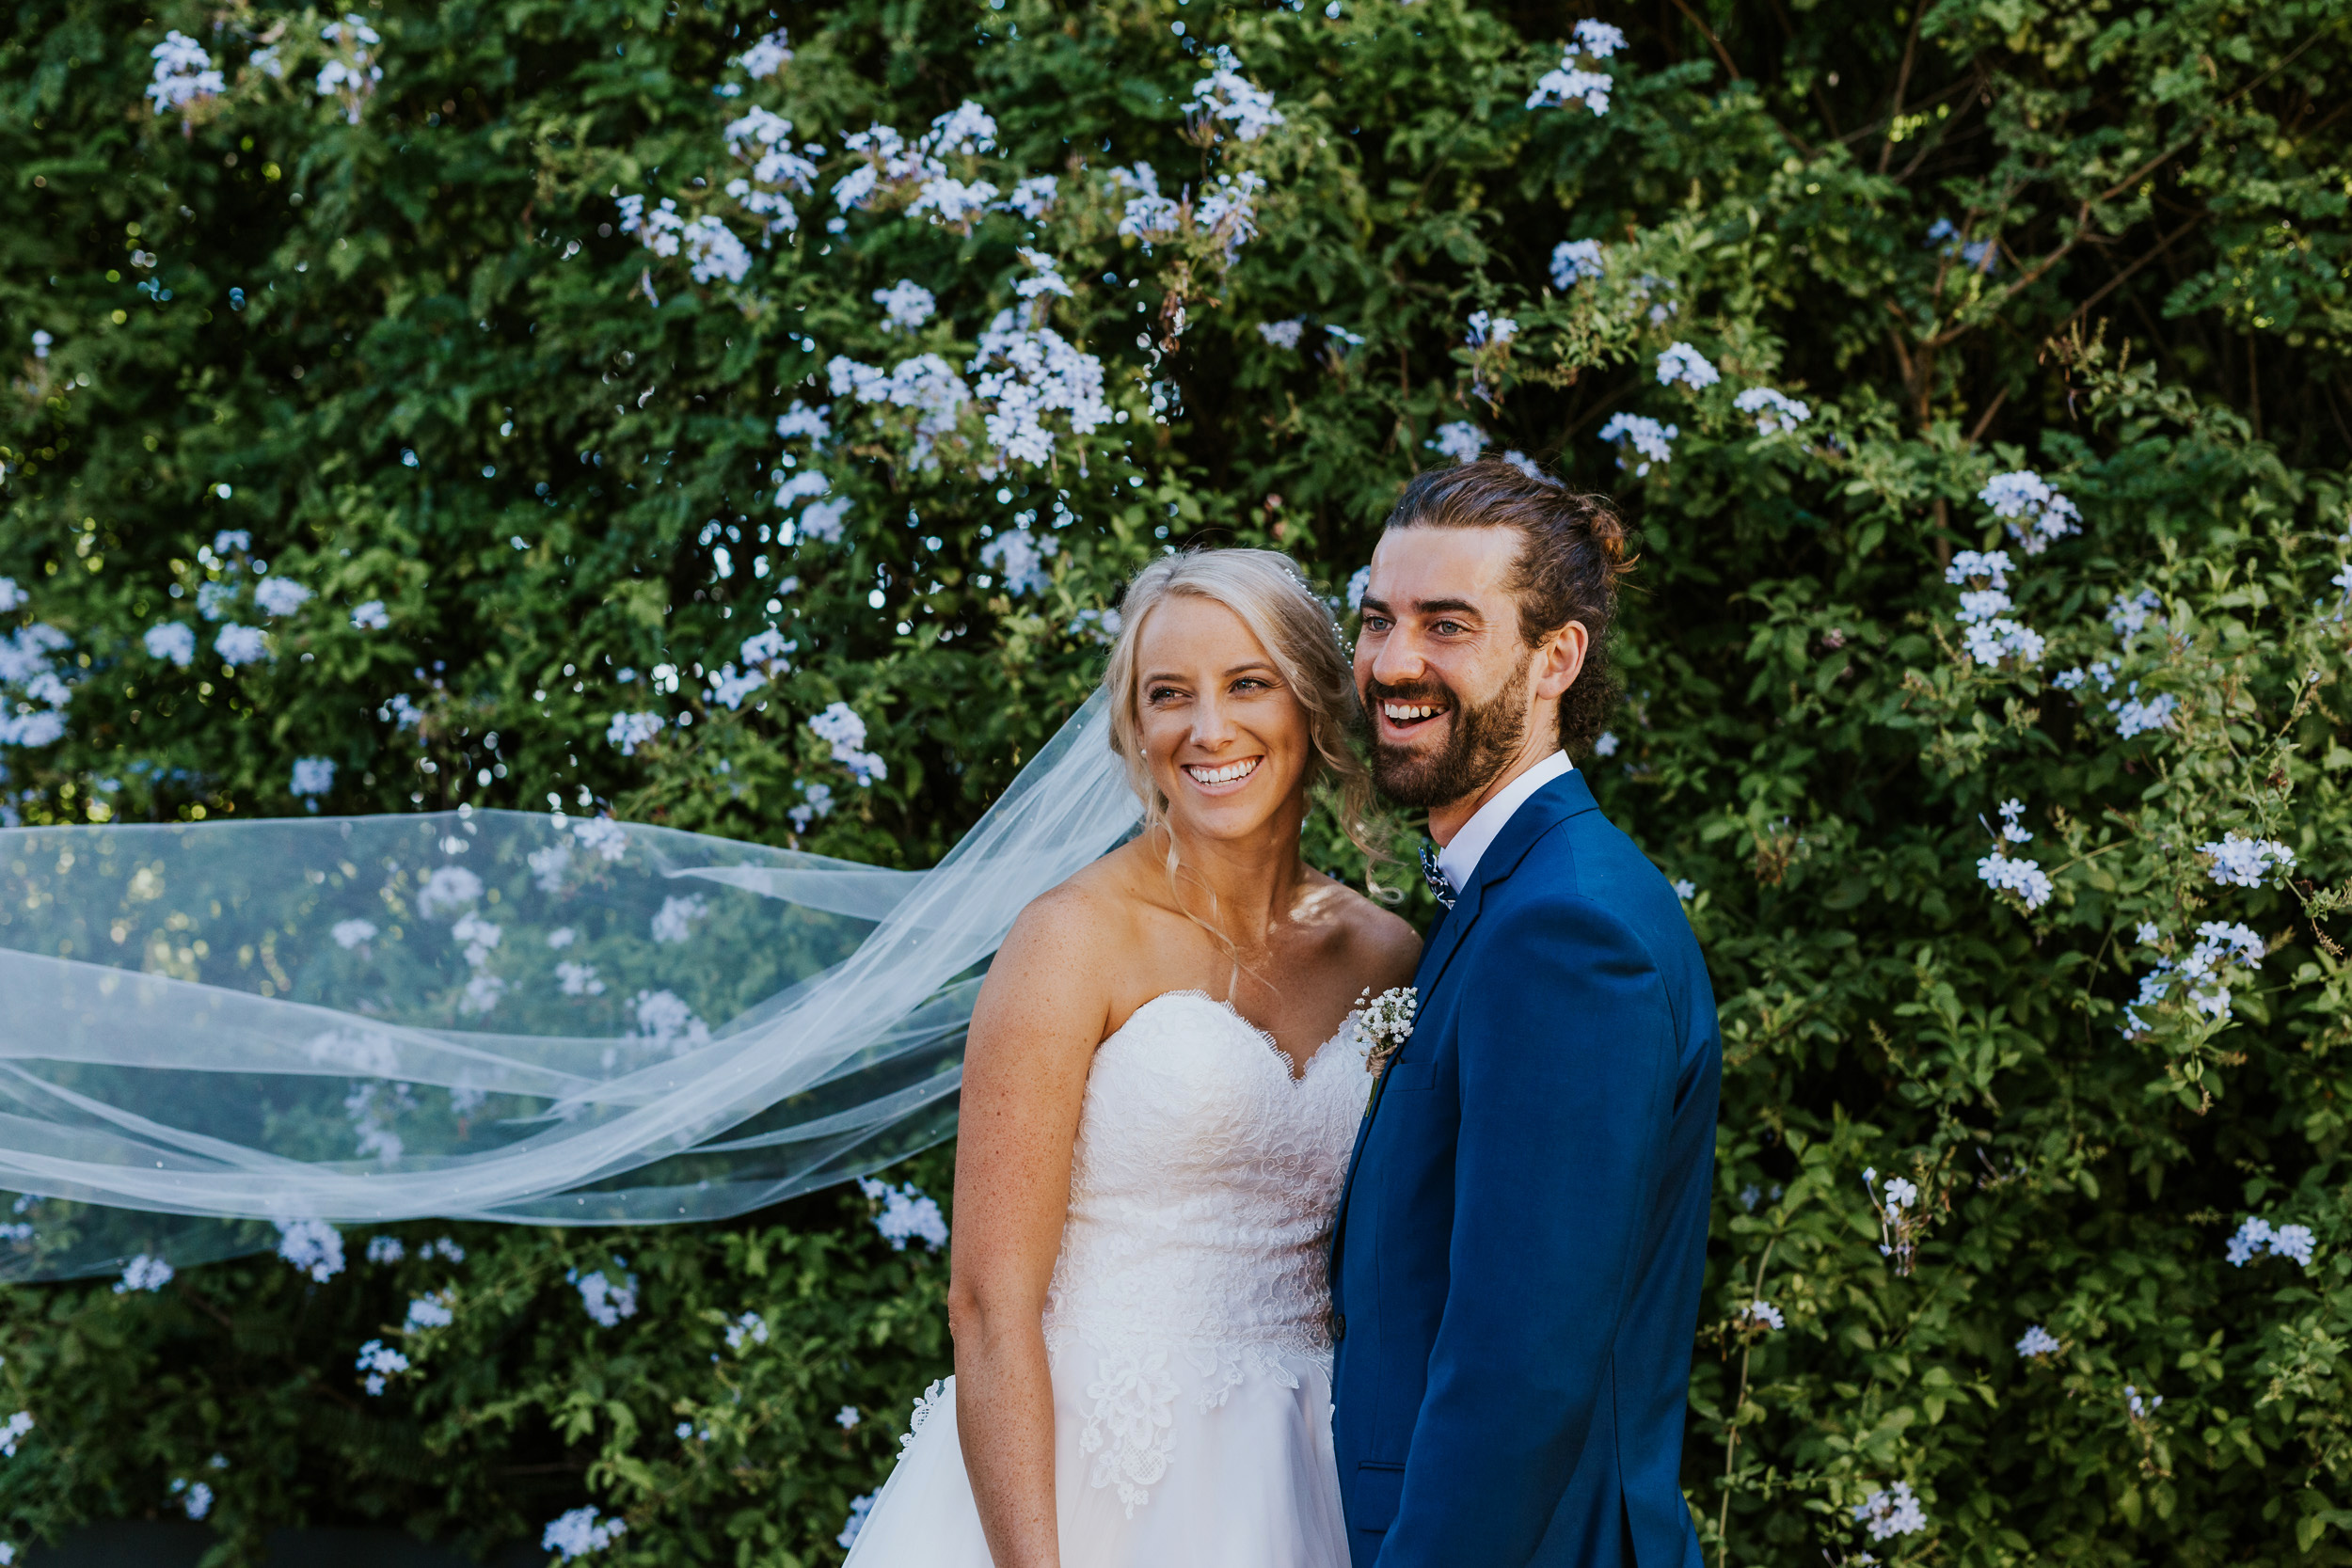 20170311 - Holly & Dan Coolangatta Estate Wedding | 284-2.jpg